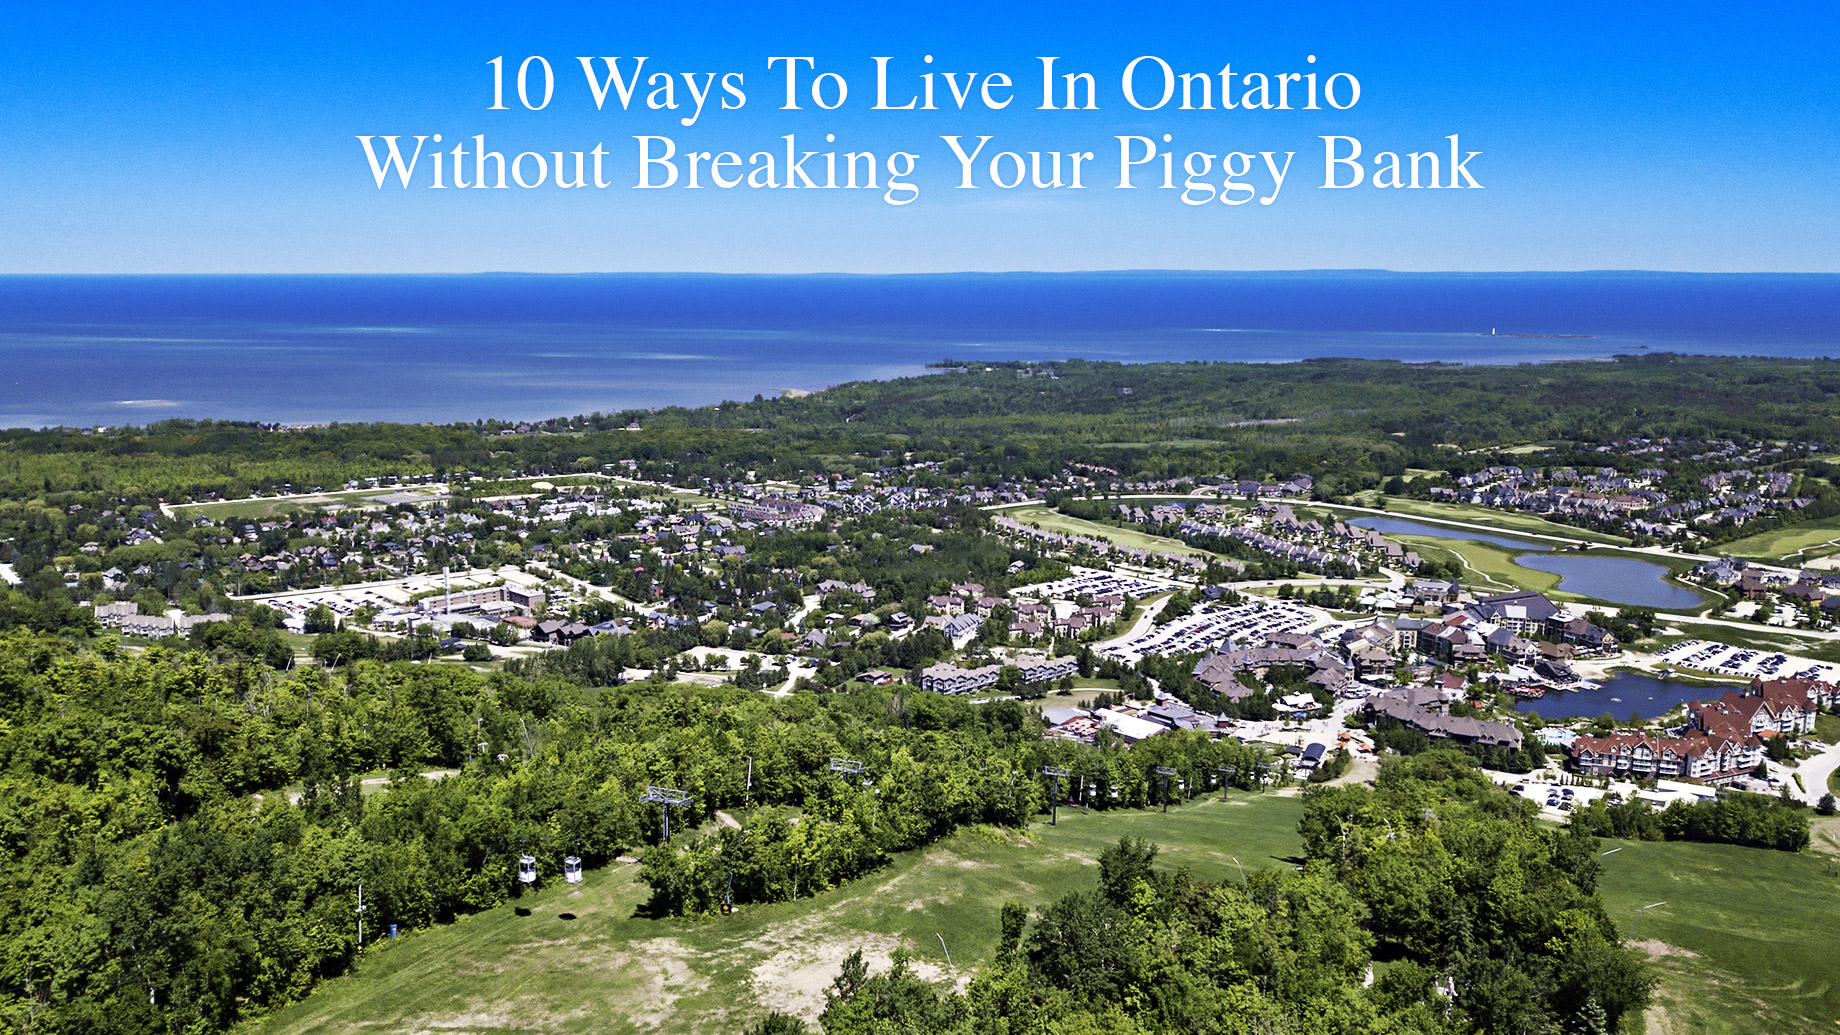 10 Ways To Live In Ontario Without Breaking Your Piggy Bank